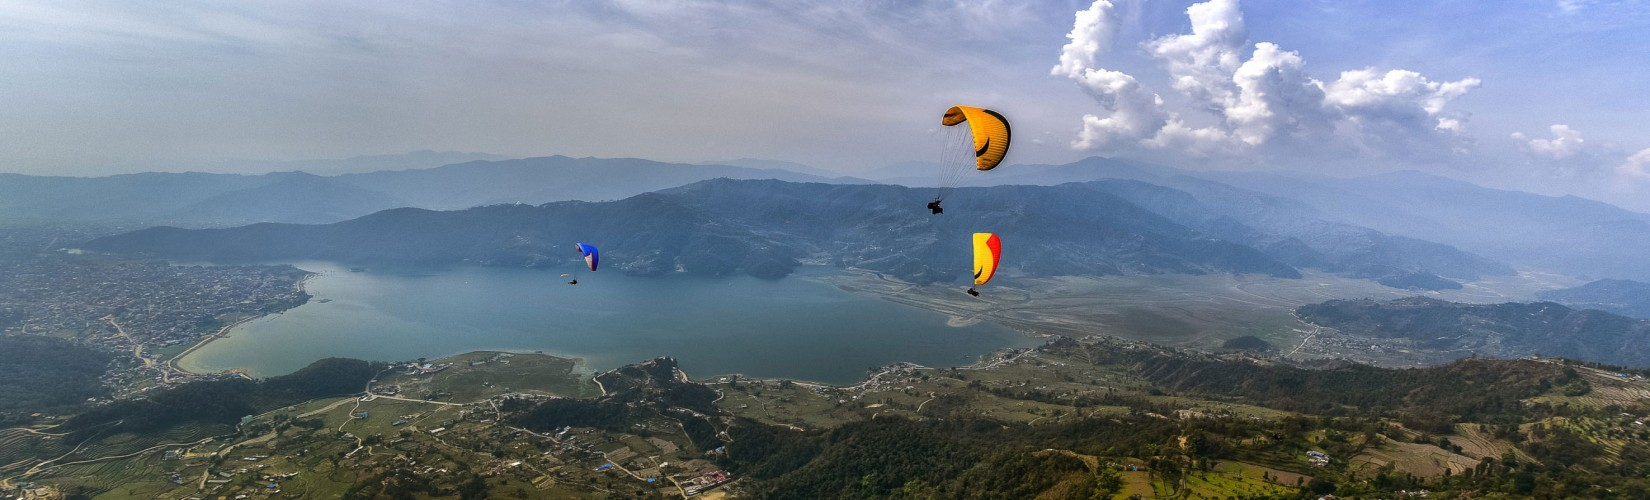 Flying over the Phewa lake paragliding in pokhara Nepal